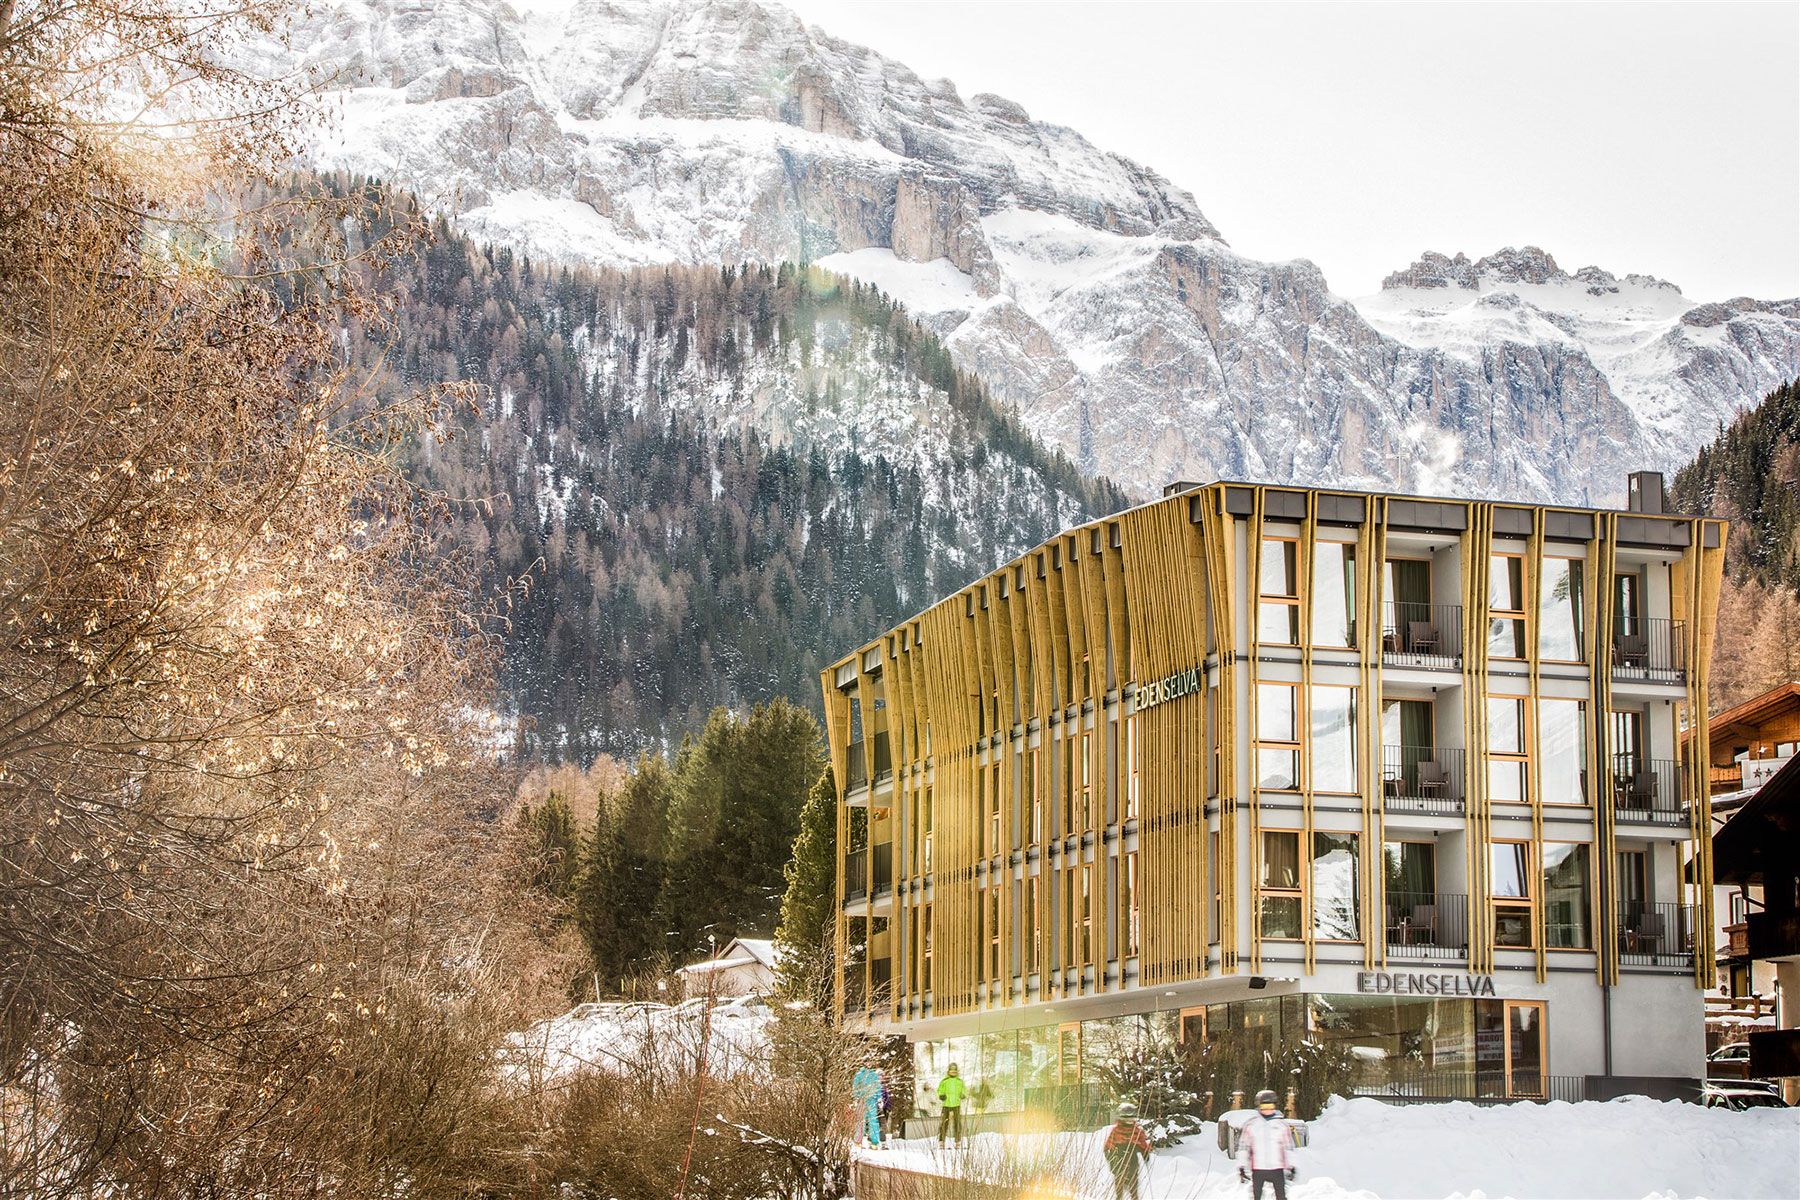 Mountain design hotel edenselva lignoalp for Best hotel design 2016